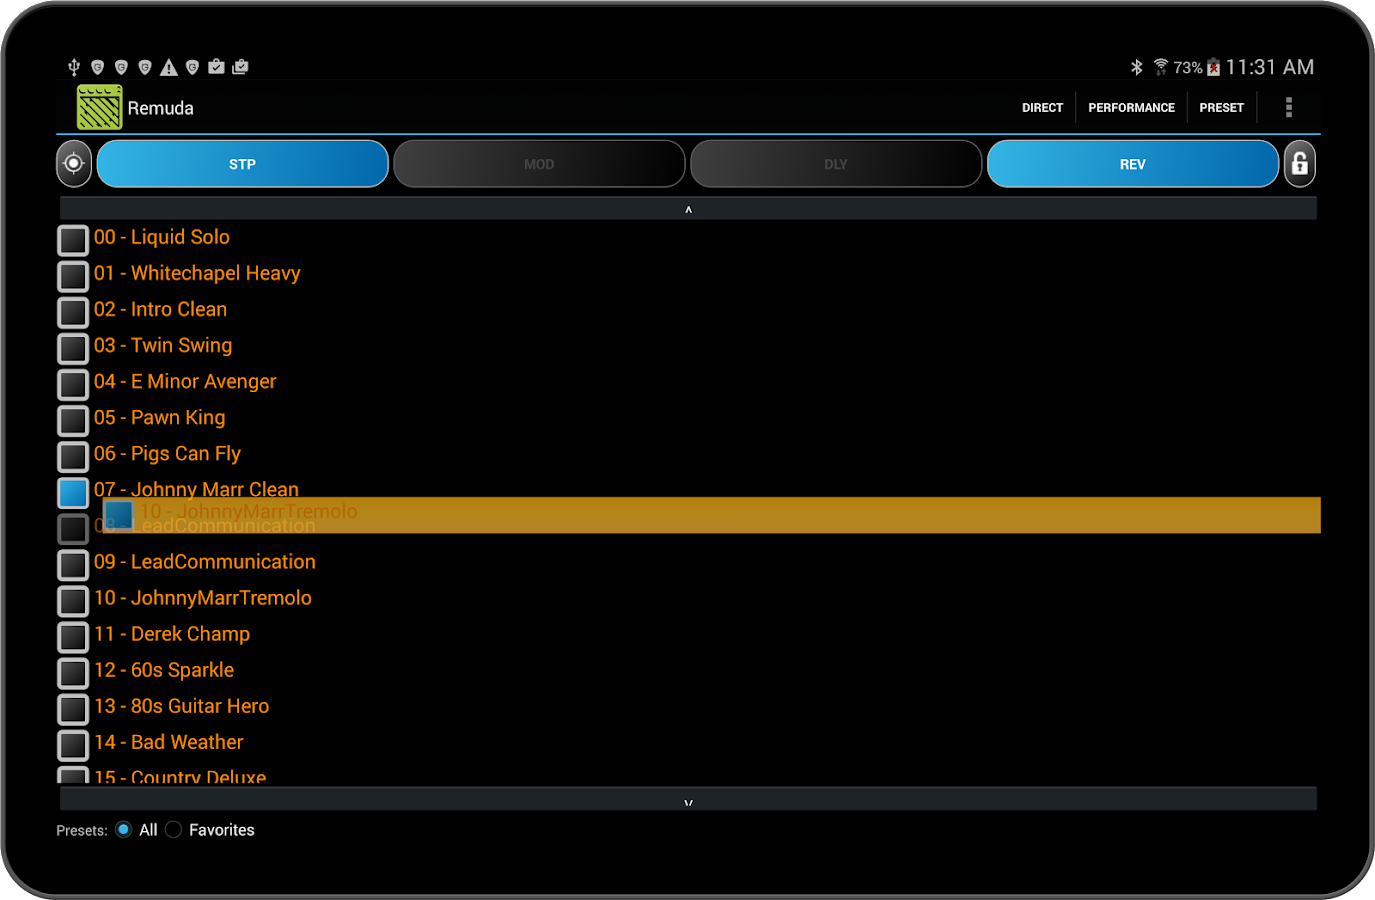 remuda - usb guitar amplifier control app - android apps on google